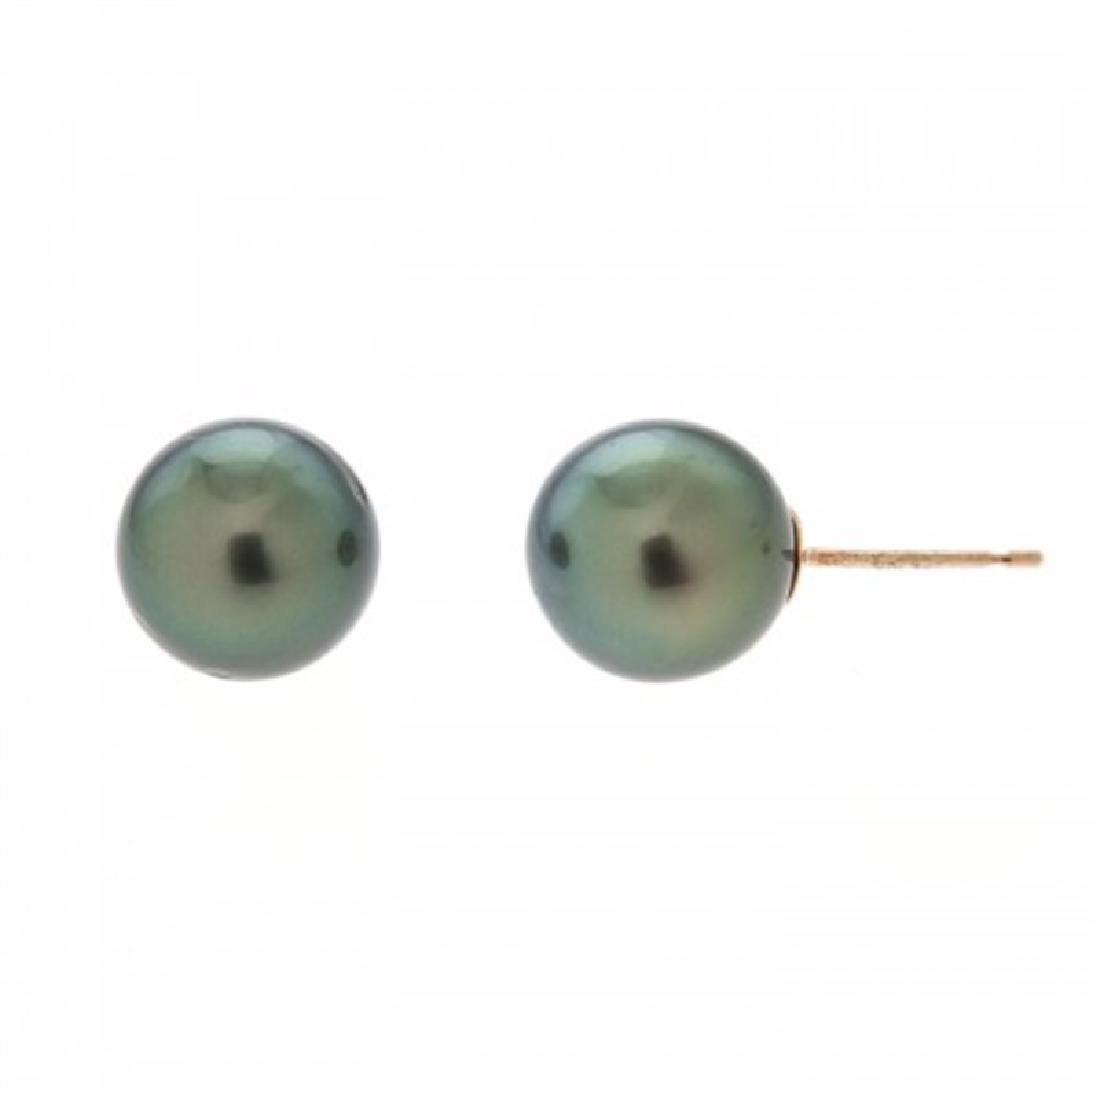 8.5-9.0mm Tahitian Black Pearl Stud Earrings